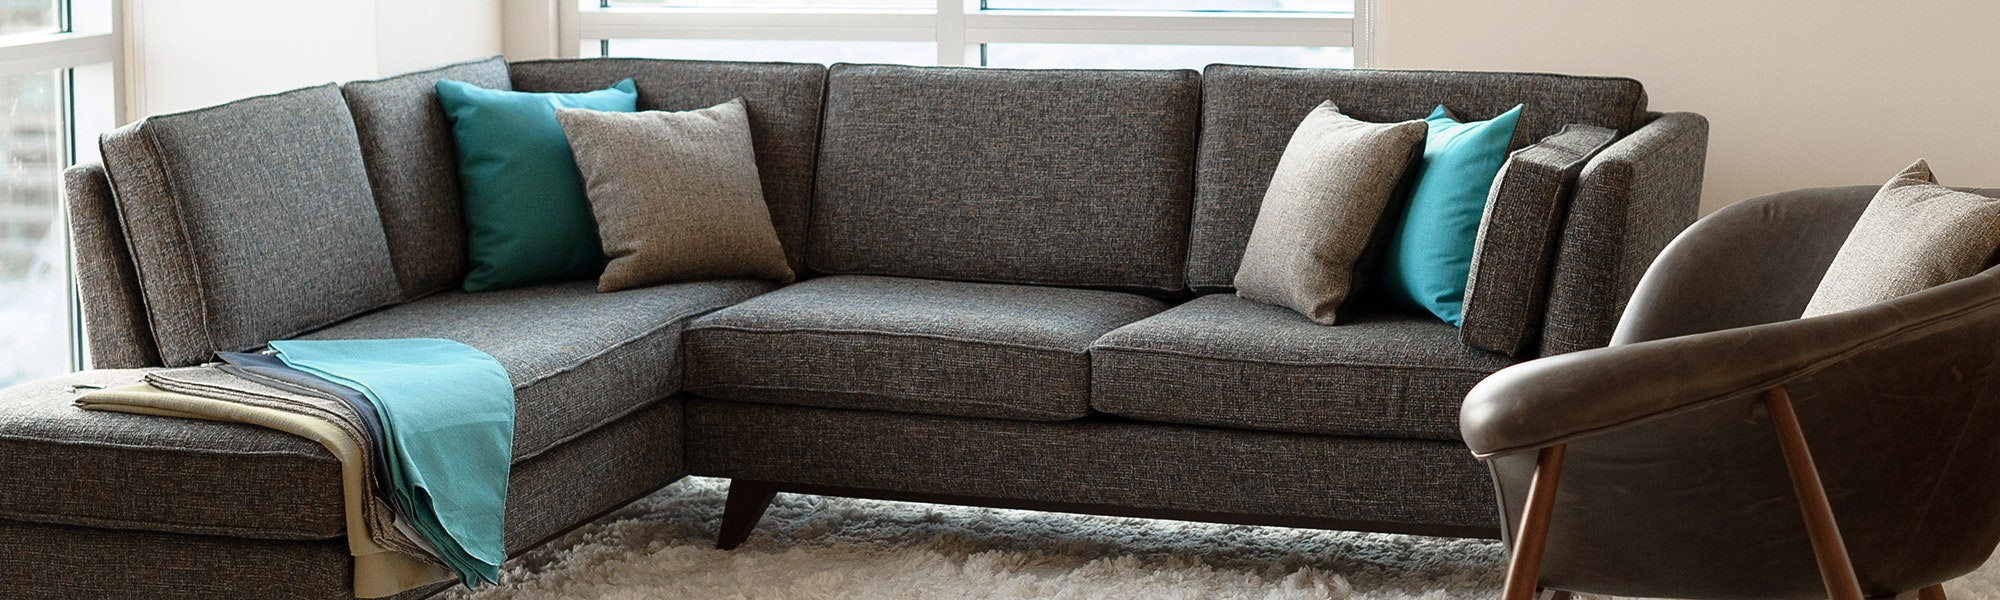 Professional Upholstery Cleaning Mount Claremont